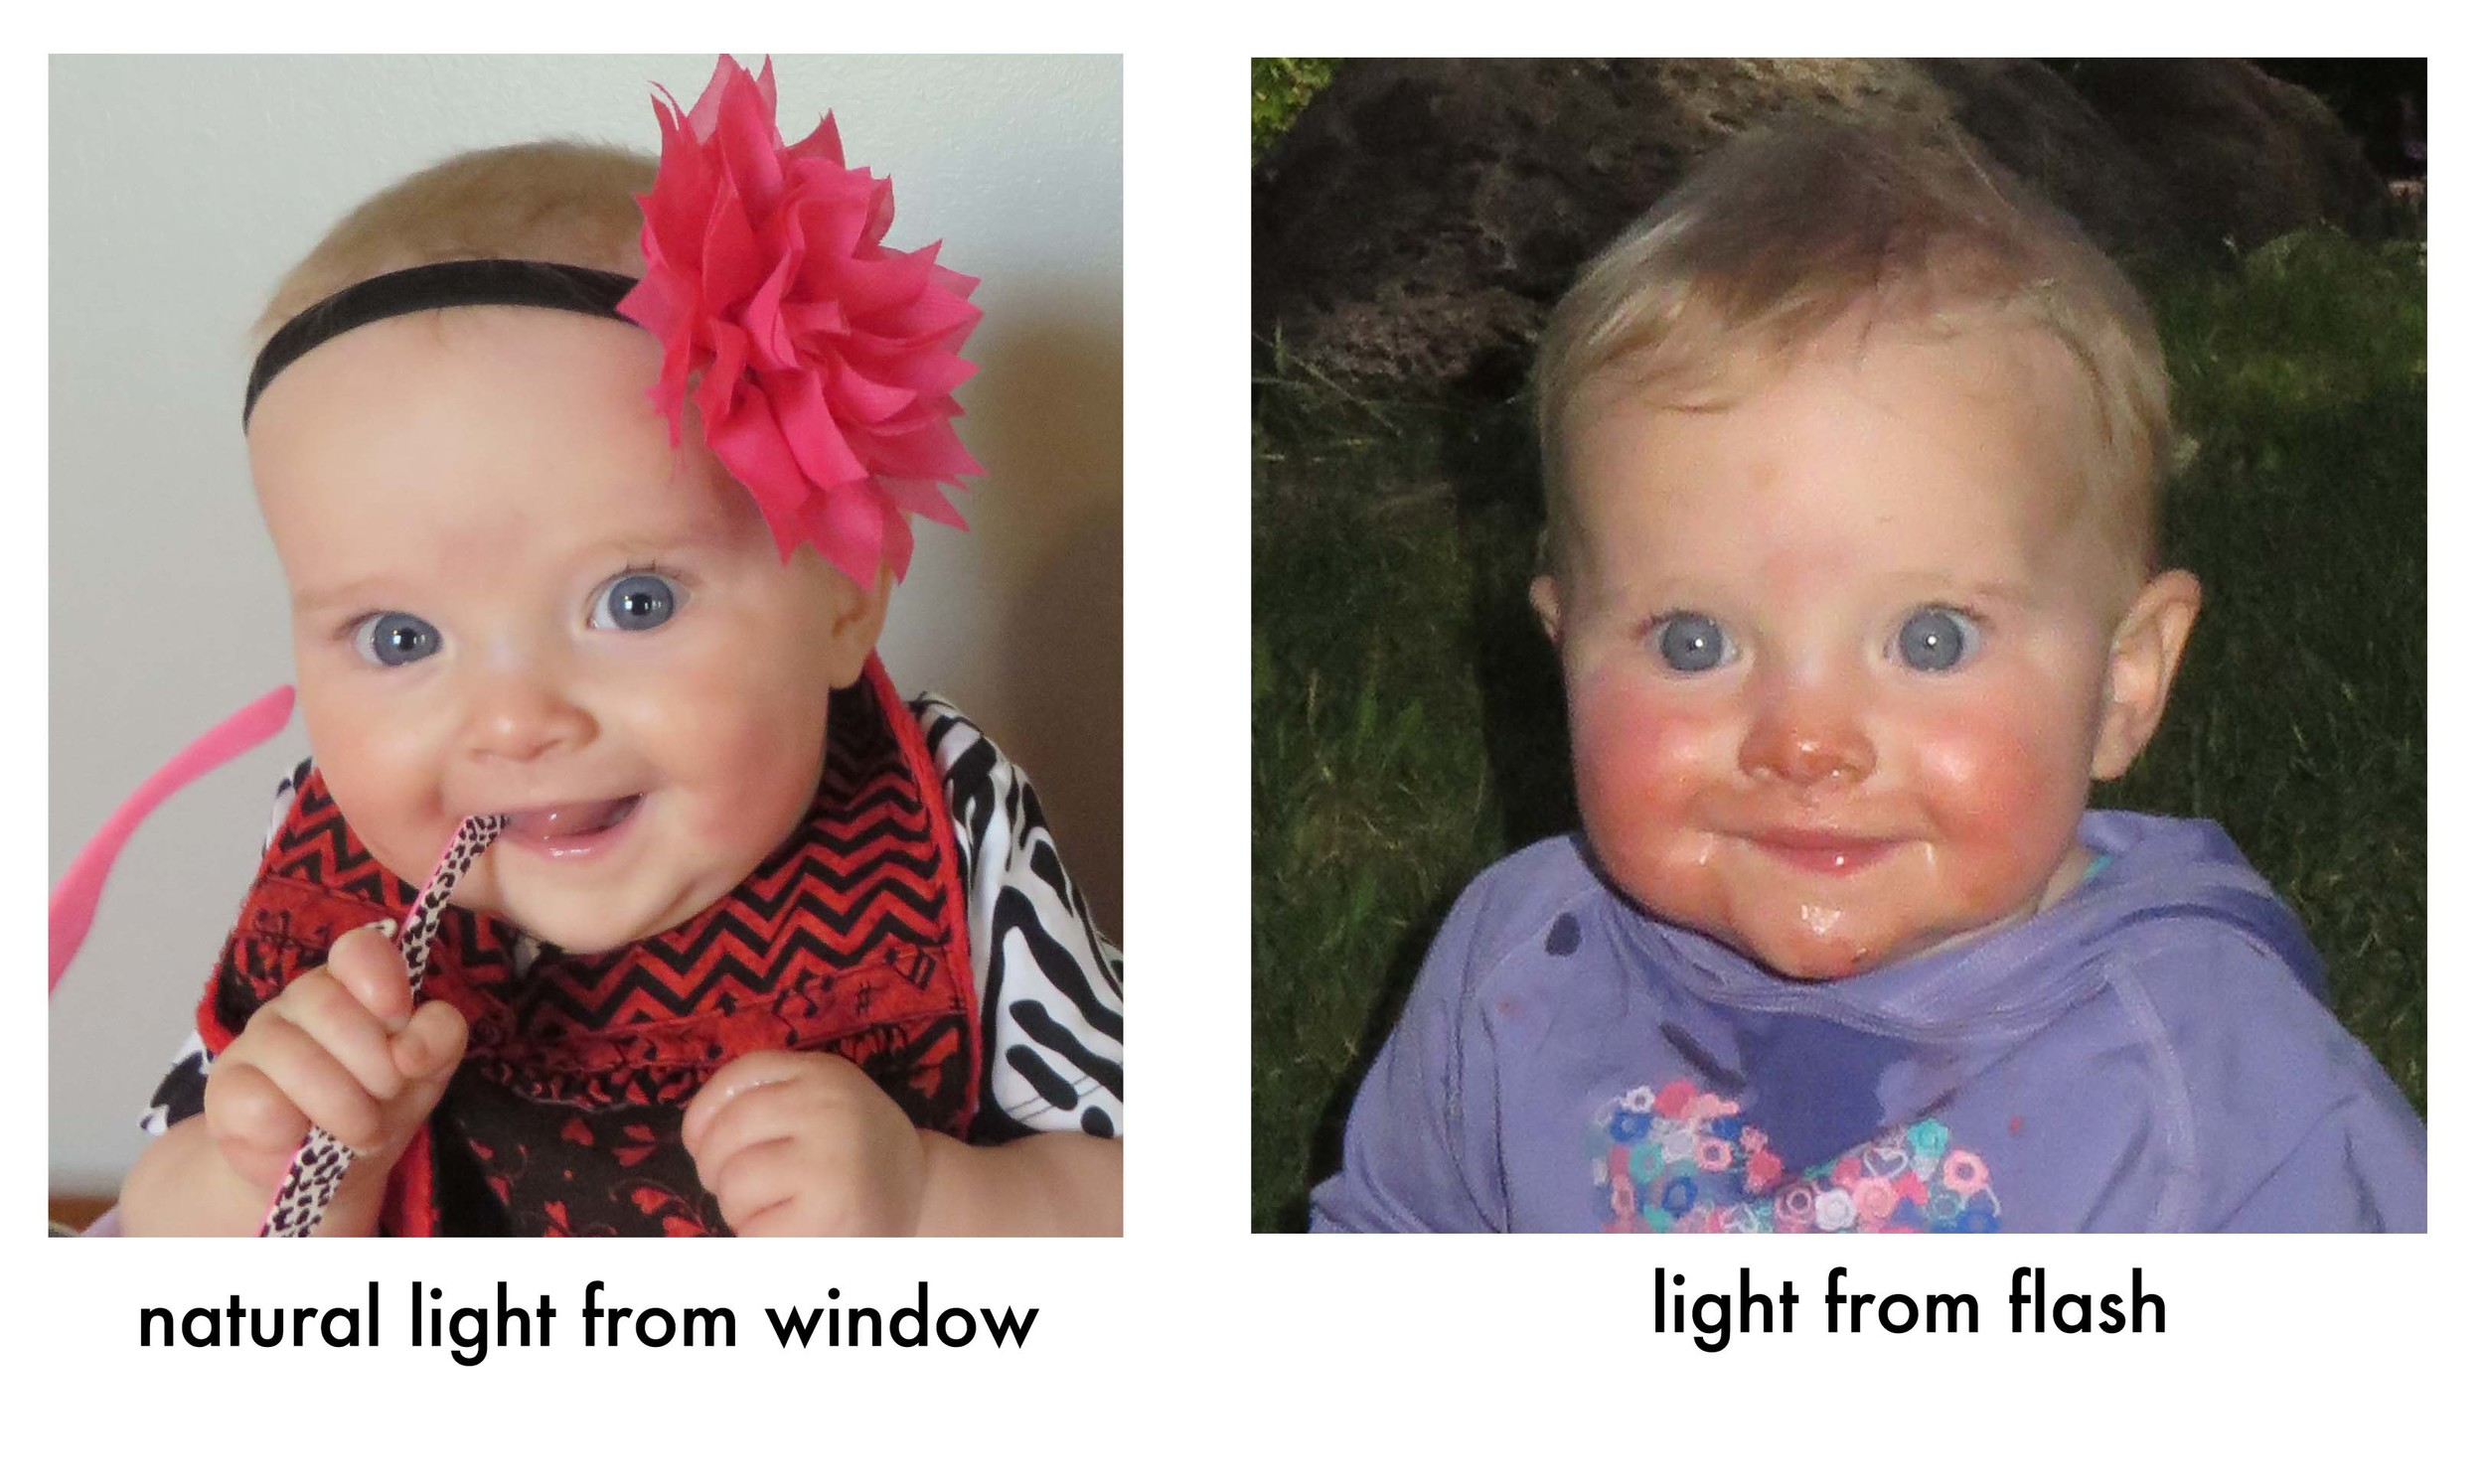 Frankly both of these photos are pretty cute - but you can tell major differences in the quality of the photo. Flashes bring out everything - from alien eyes to shiny drool. Natural light gives that 'porcelain skin' look  and brighter eyes.